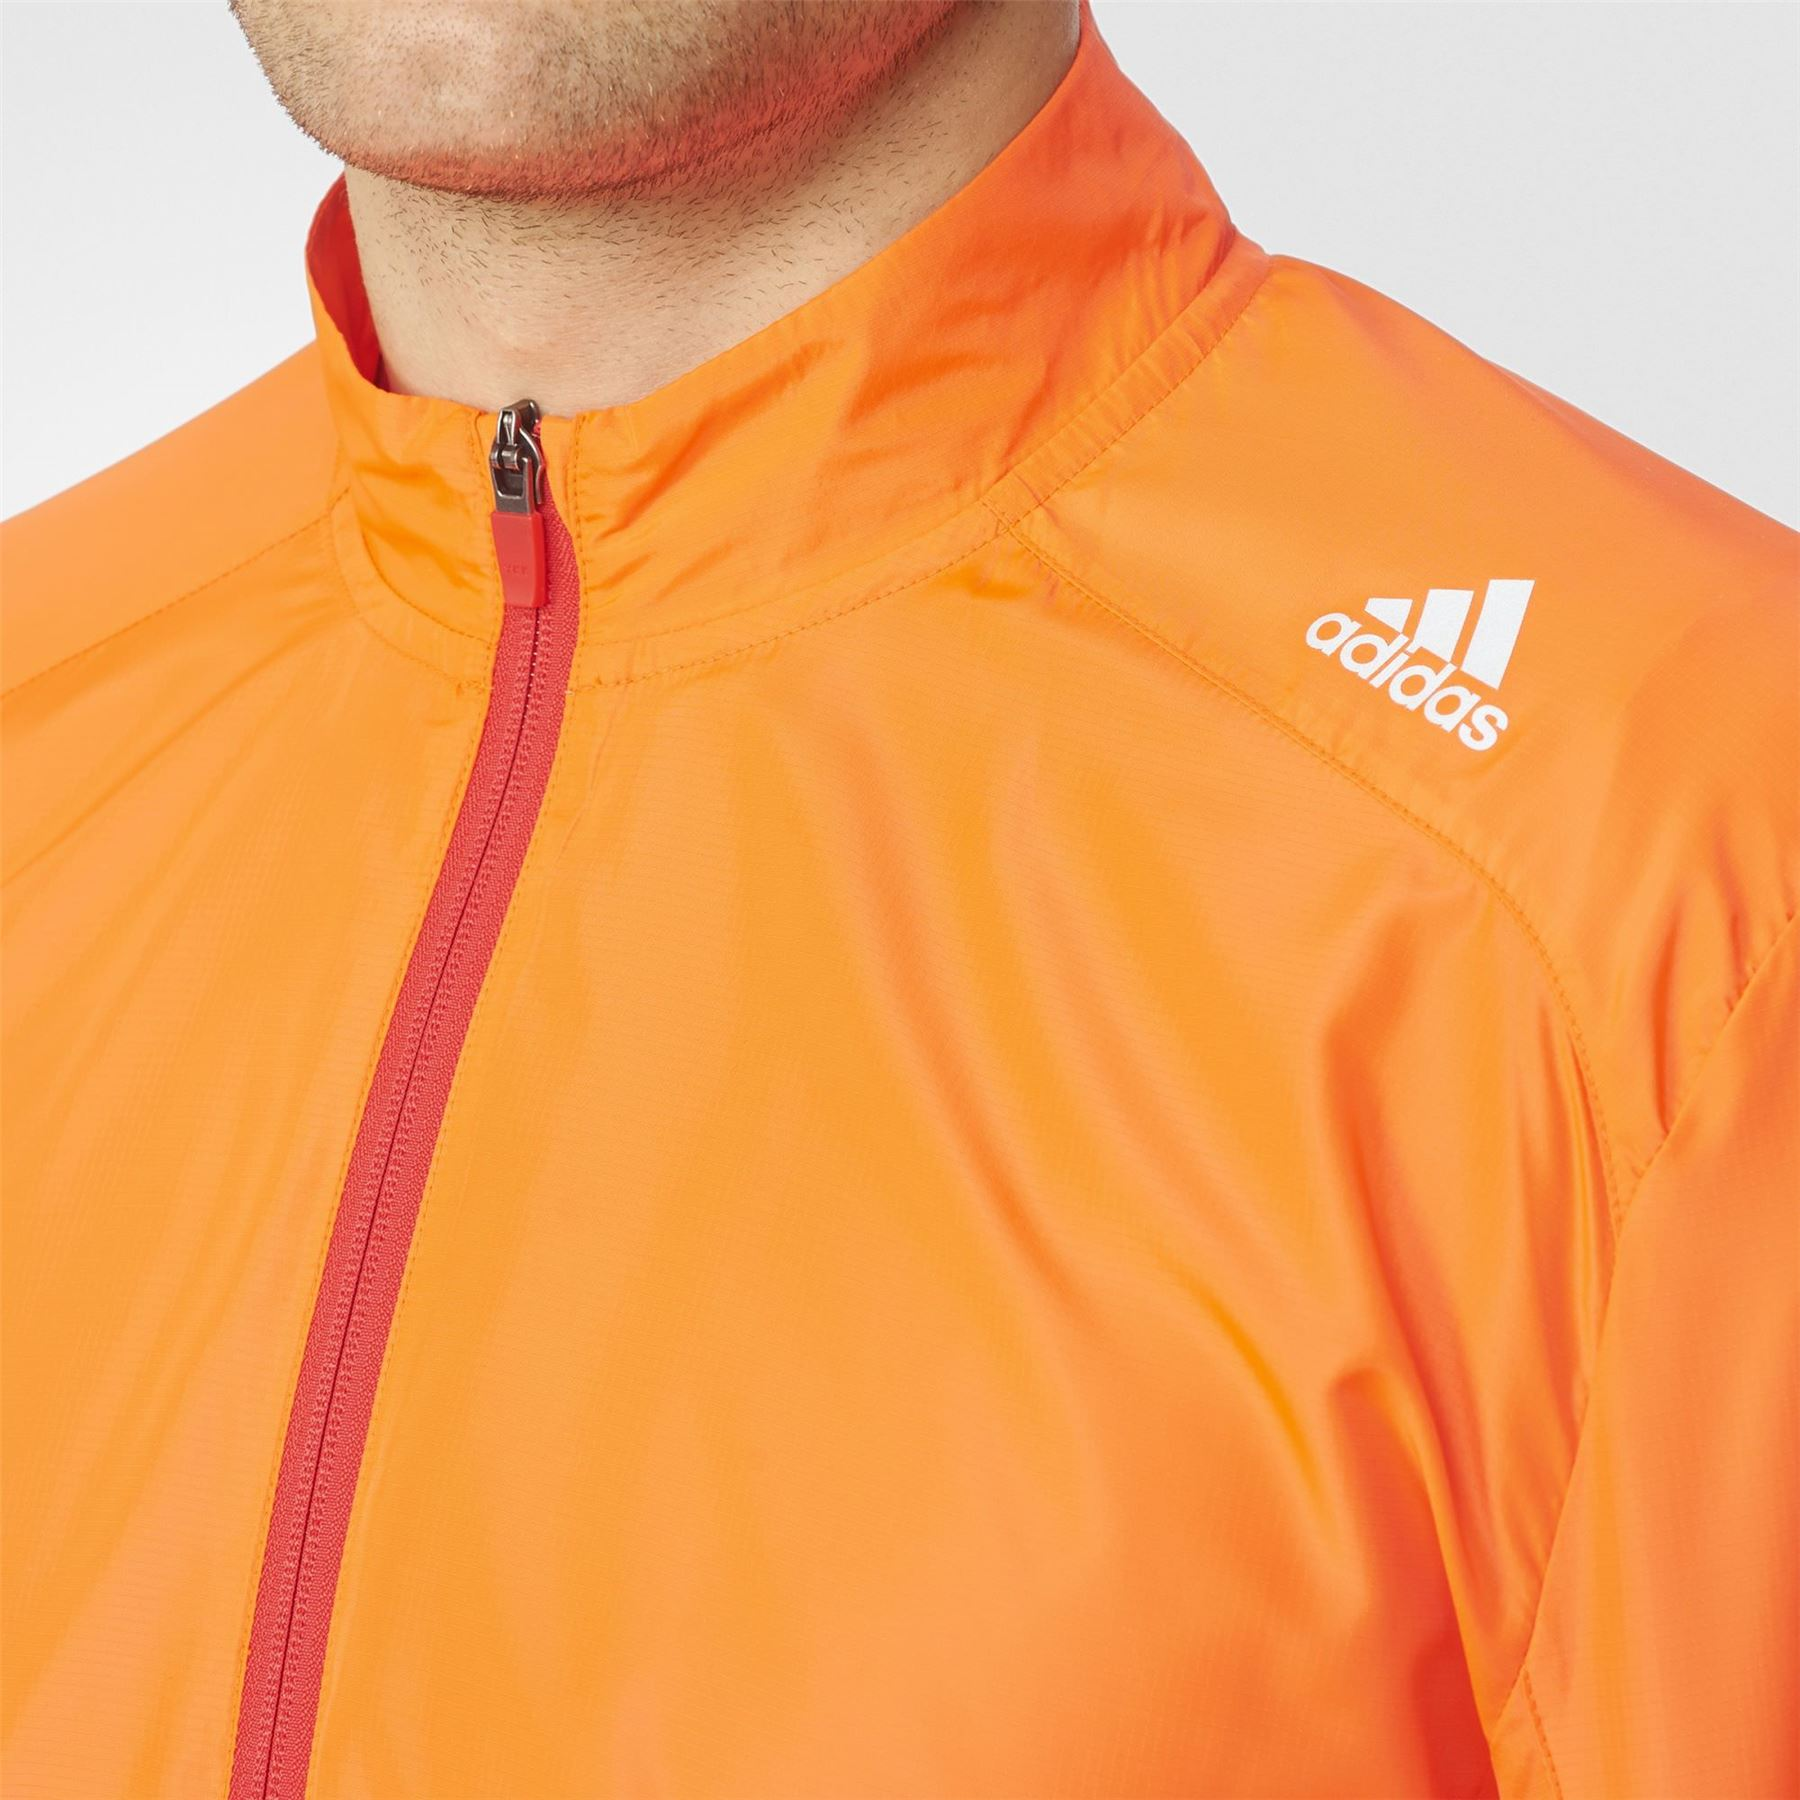 Details about adidas Response Wind Running Jacket Mens Red Run Jogging Track Zip Top